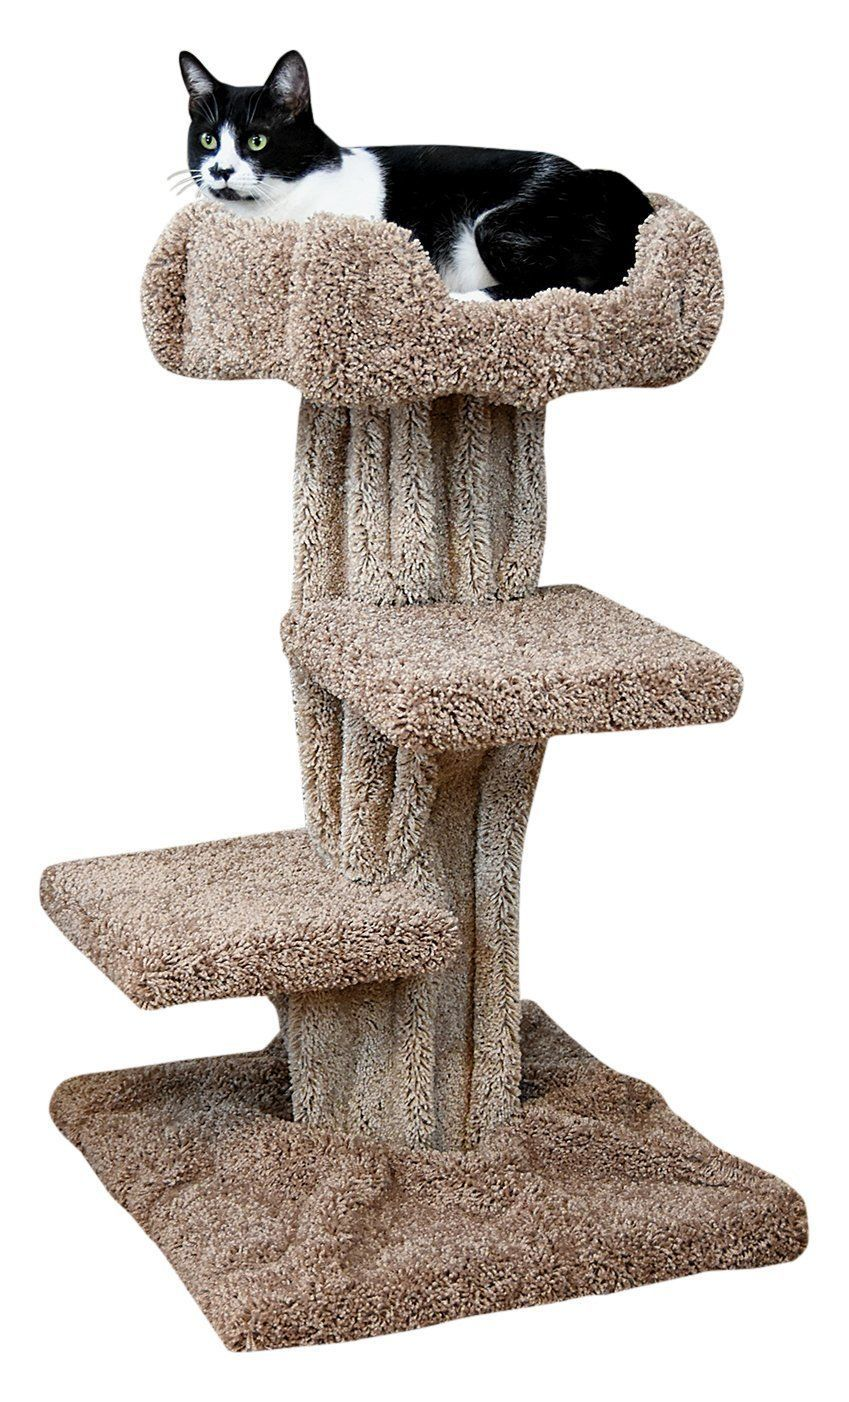 Cheap Solid Wood Carpeted Cat Tree Cool Cat Tree Plans Cat Tree Plans Cool Cat Trees Large Cat Tree Cat perches for large cats